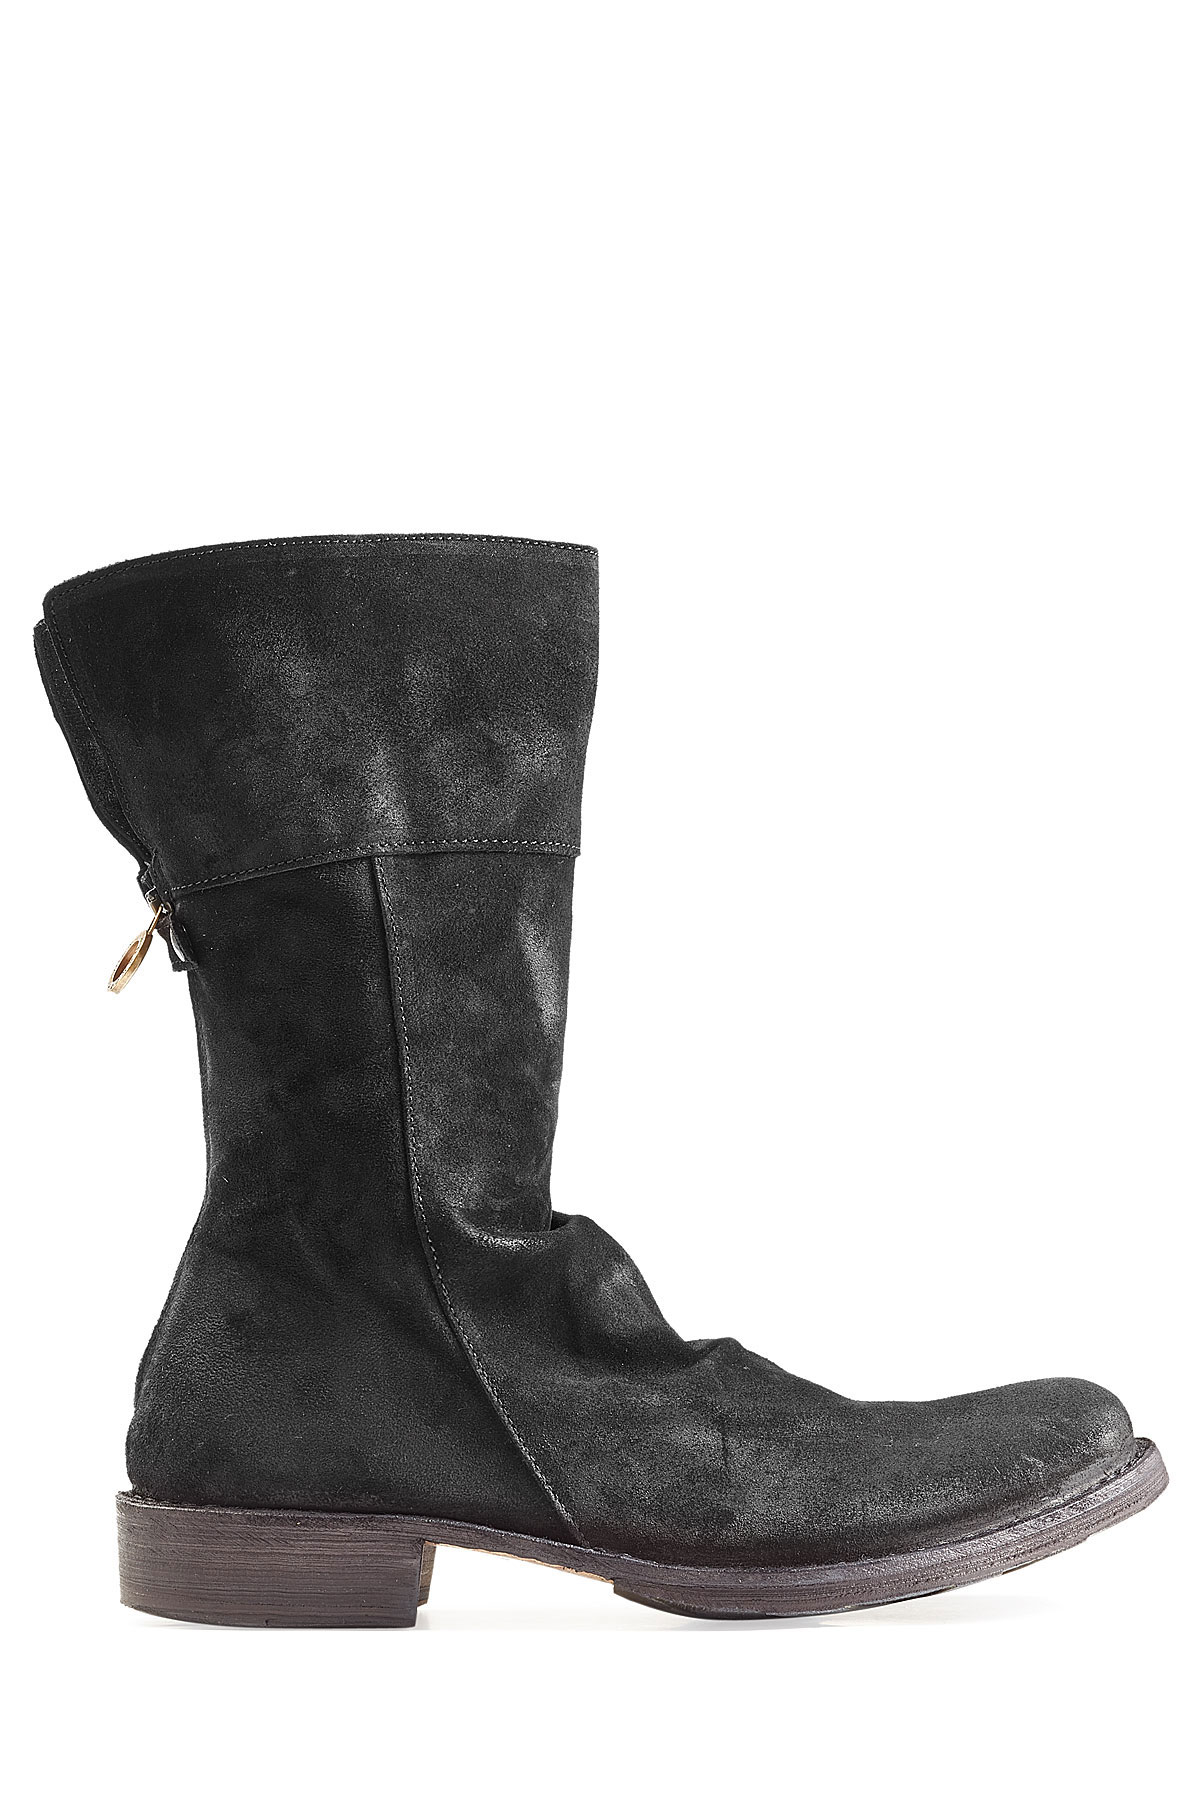 fiorentini baker leather boots black in black lyst